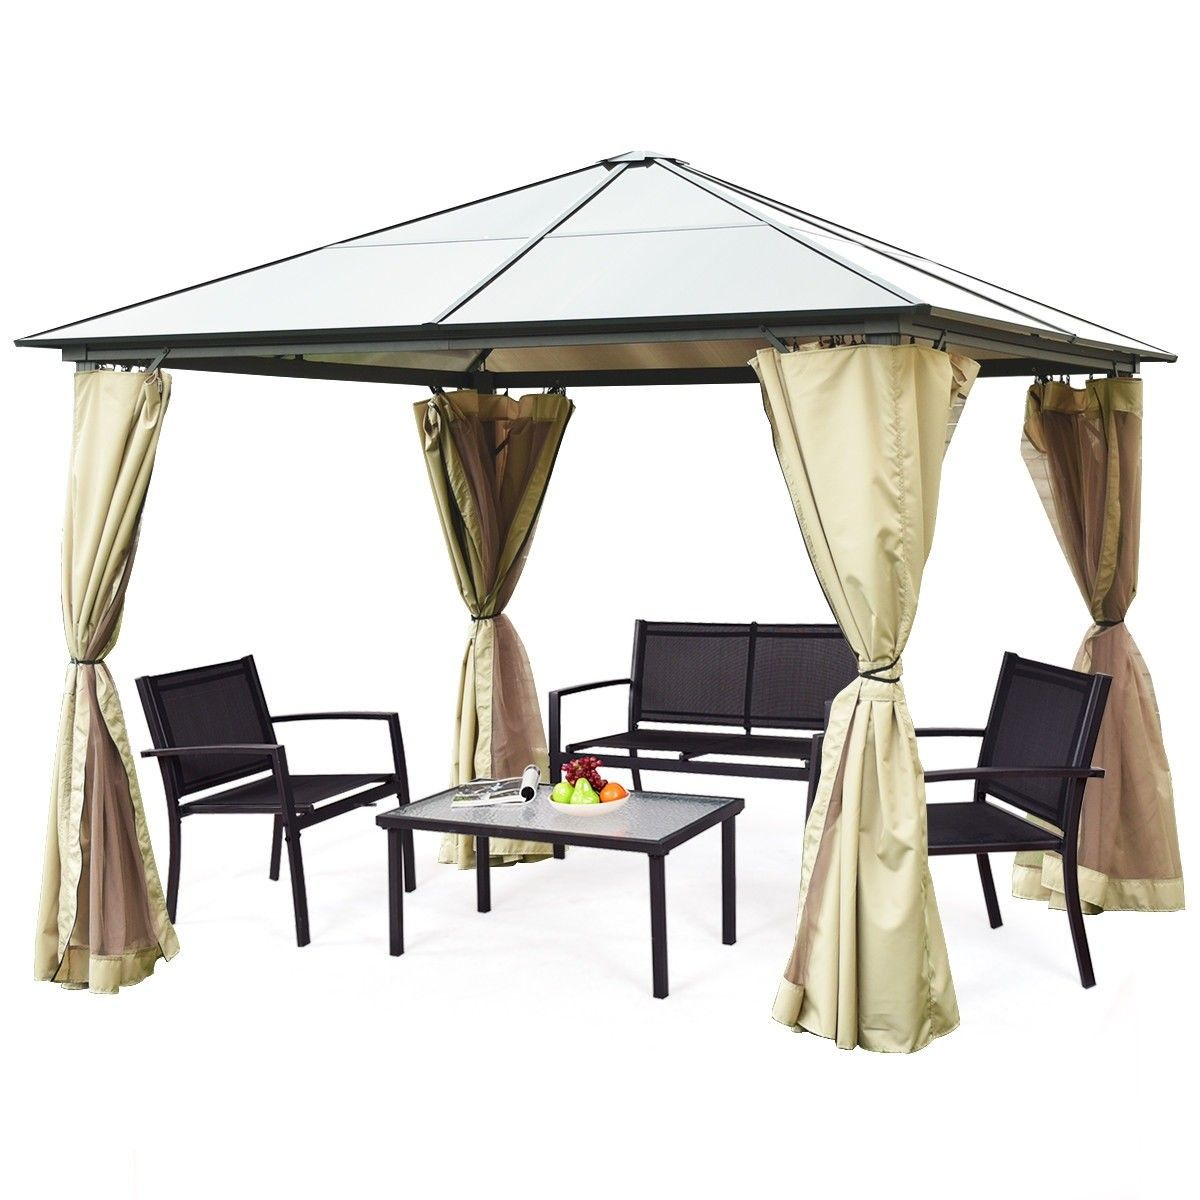 13 X 10 Gazebo Canopy Shelter Patio Party Tent Gazebo Canopy Gazebo Canopy Shelter